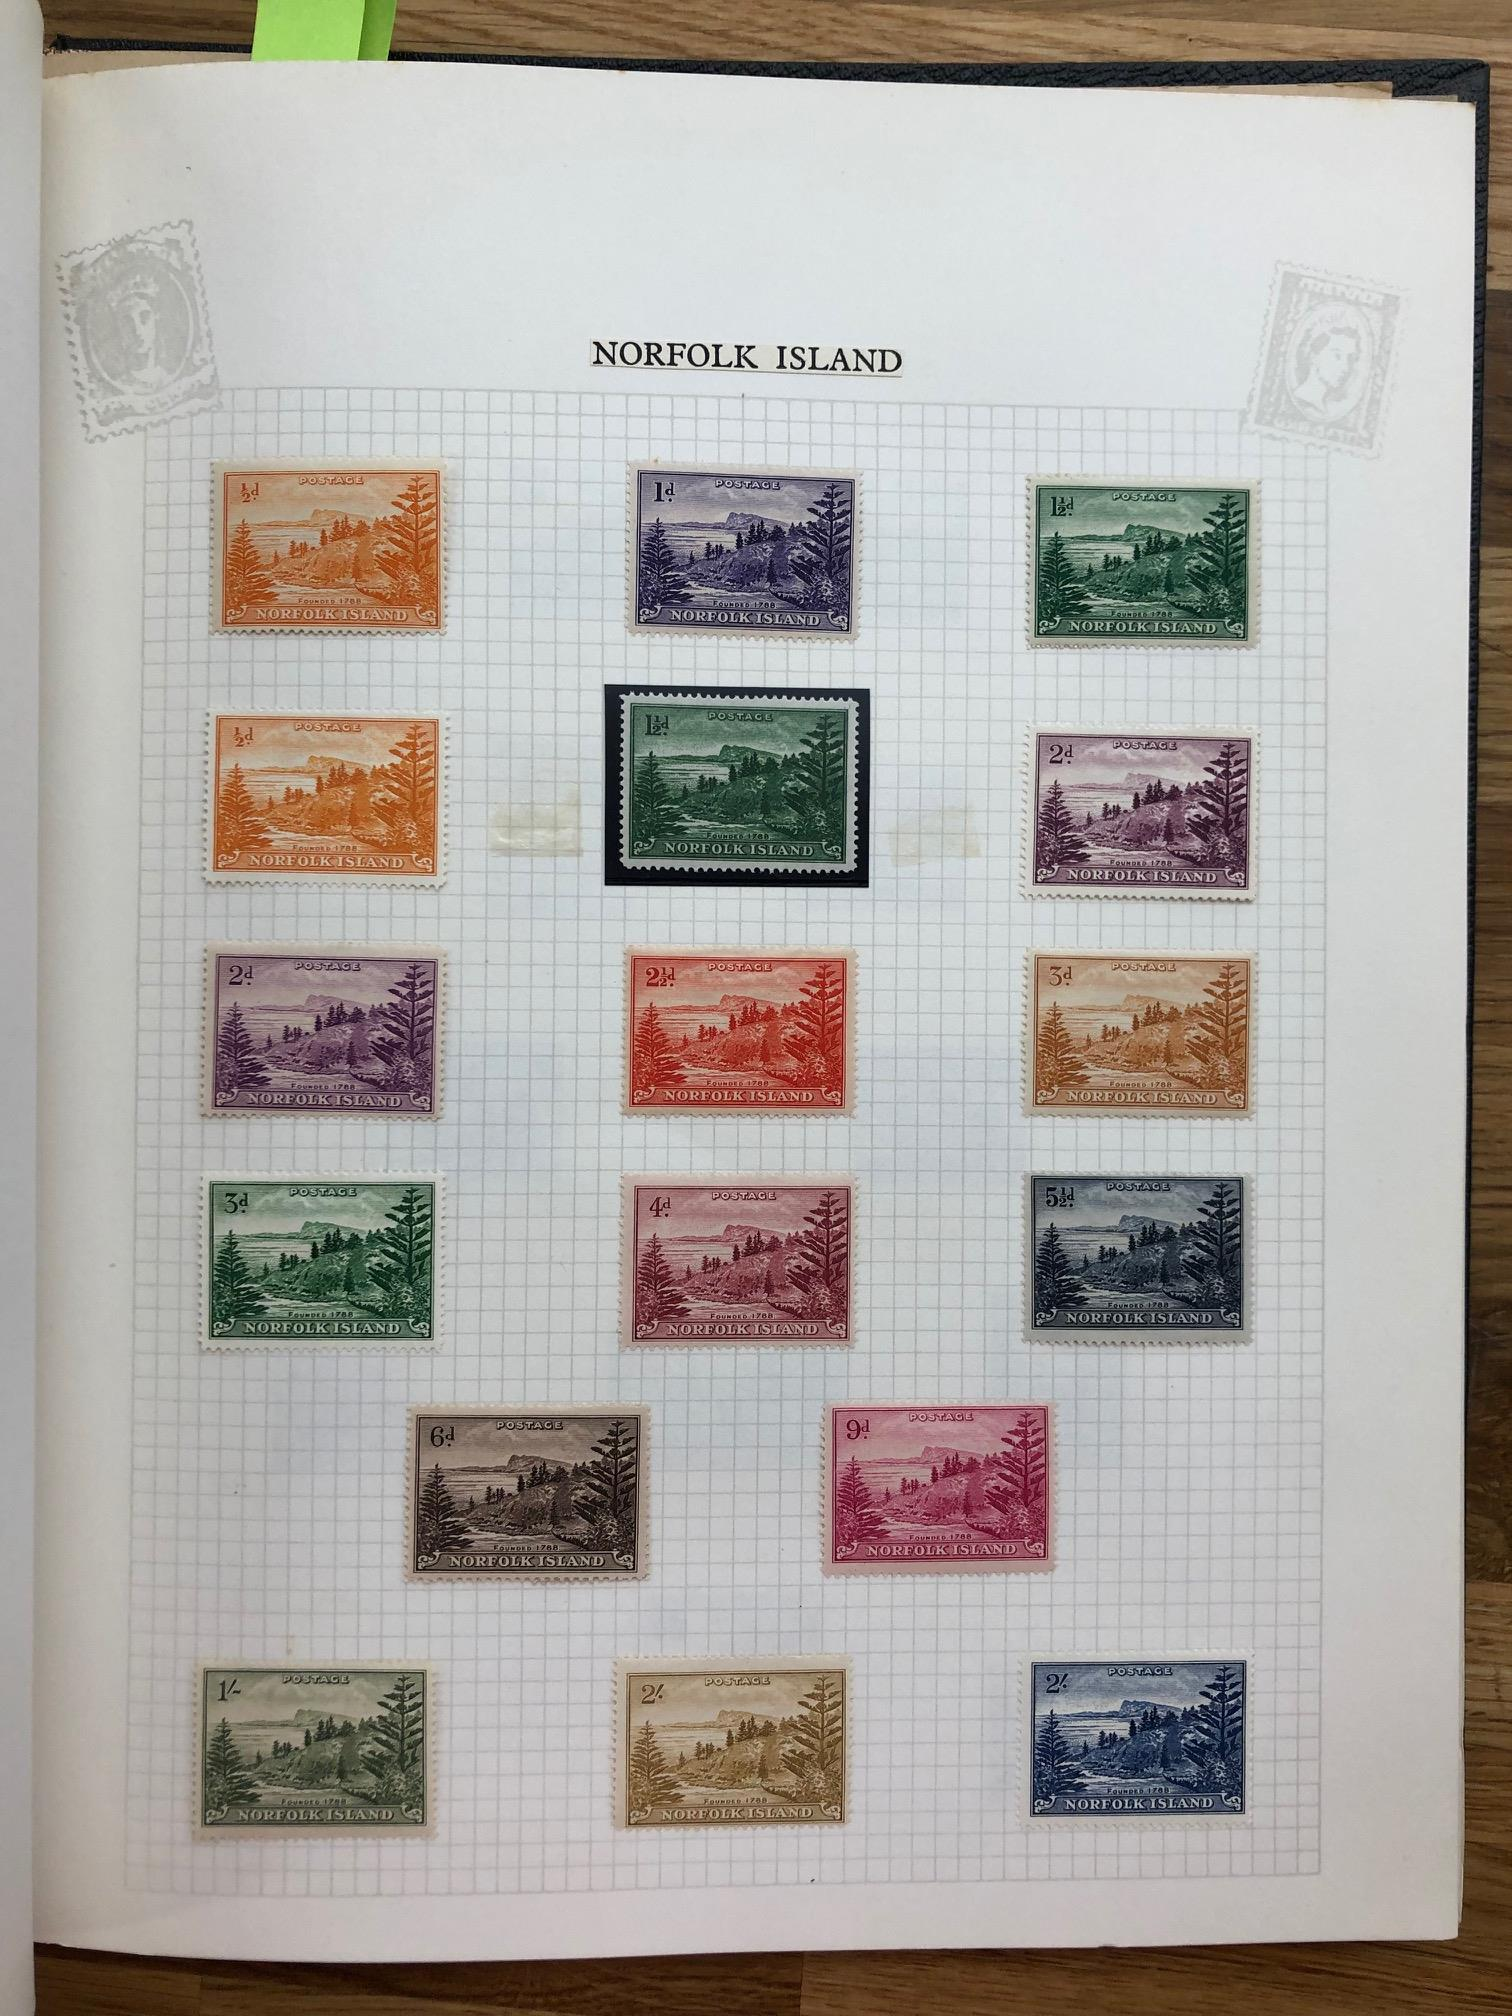 COMMONWEALTH a clean mint collection of Pacific Islands with Nauru GB opts to 1/-, Niue, Norfolk - Image 2 of 4